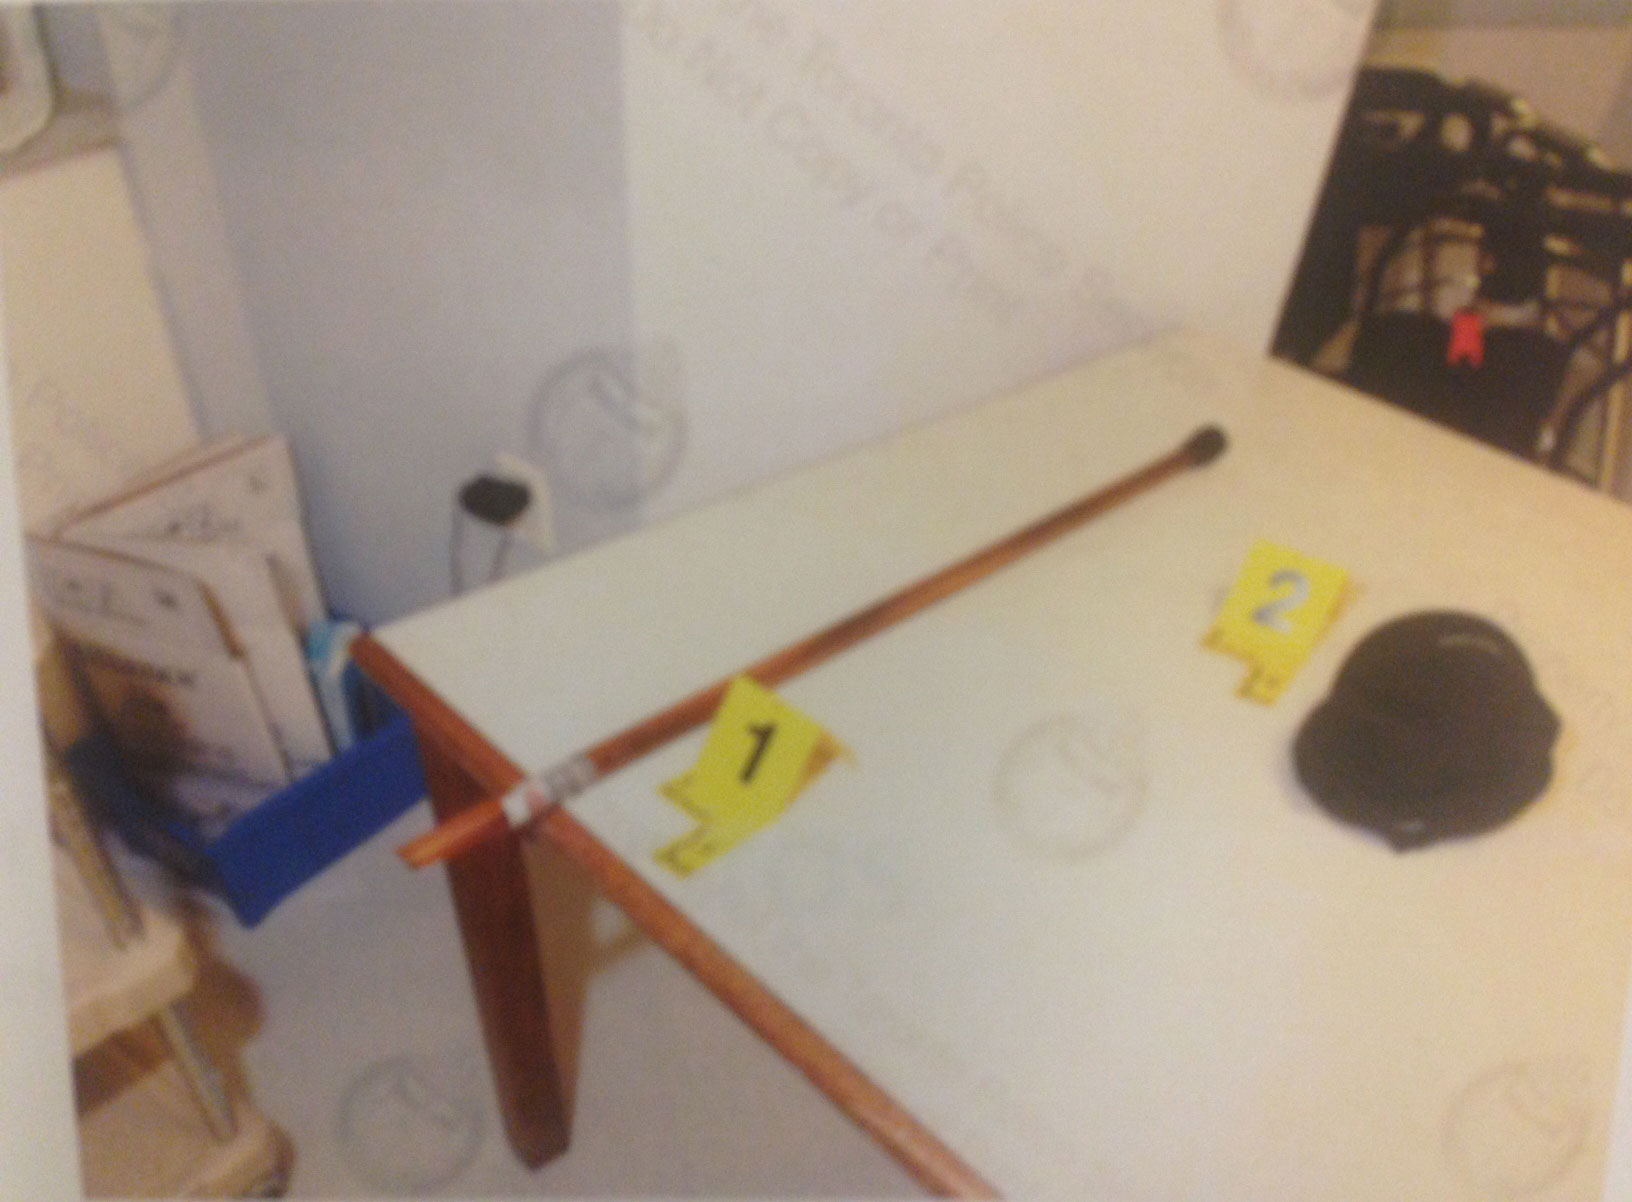 The cane the suspect allegedly used to attack two fellow residents at Wexford Residence, a long-term care home in Toronto, on March 13, 2013 (court documents).